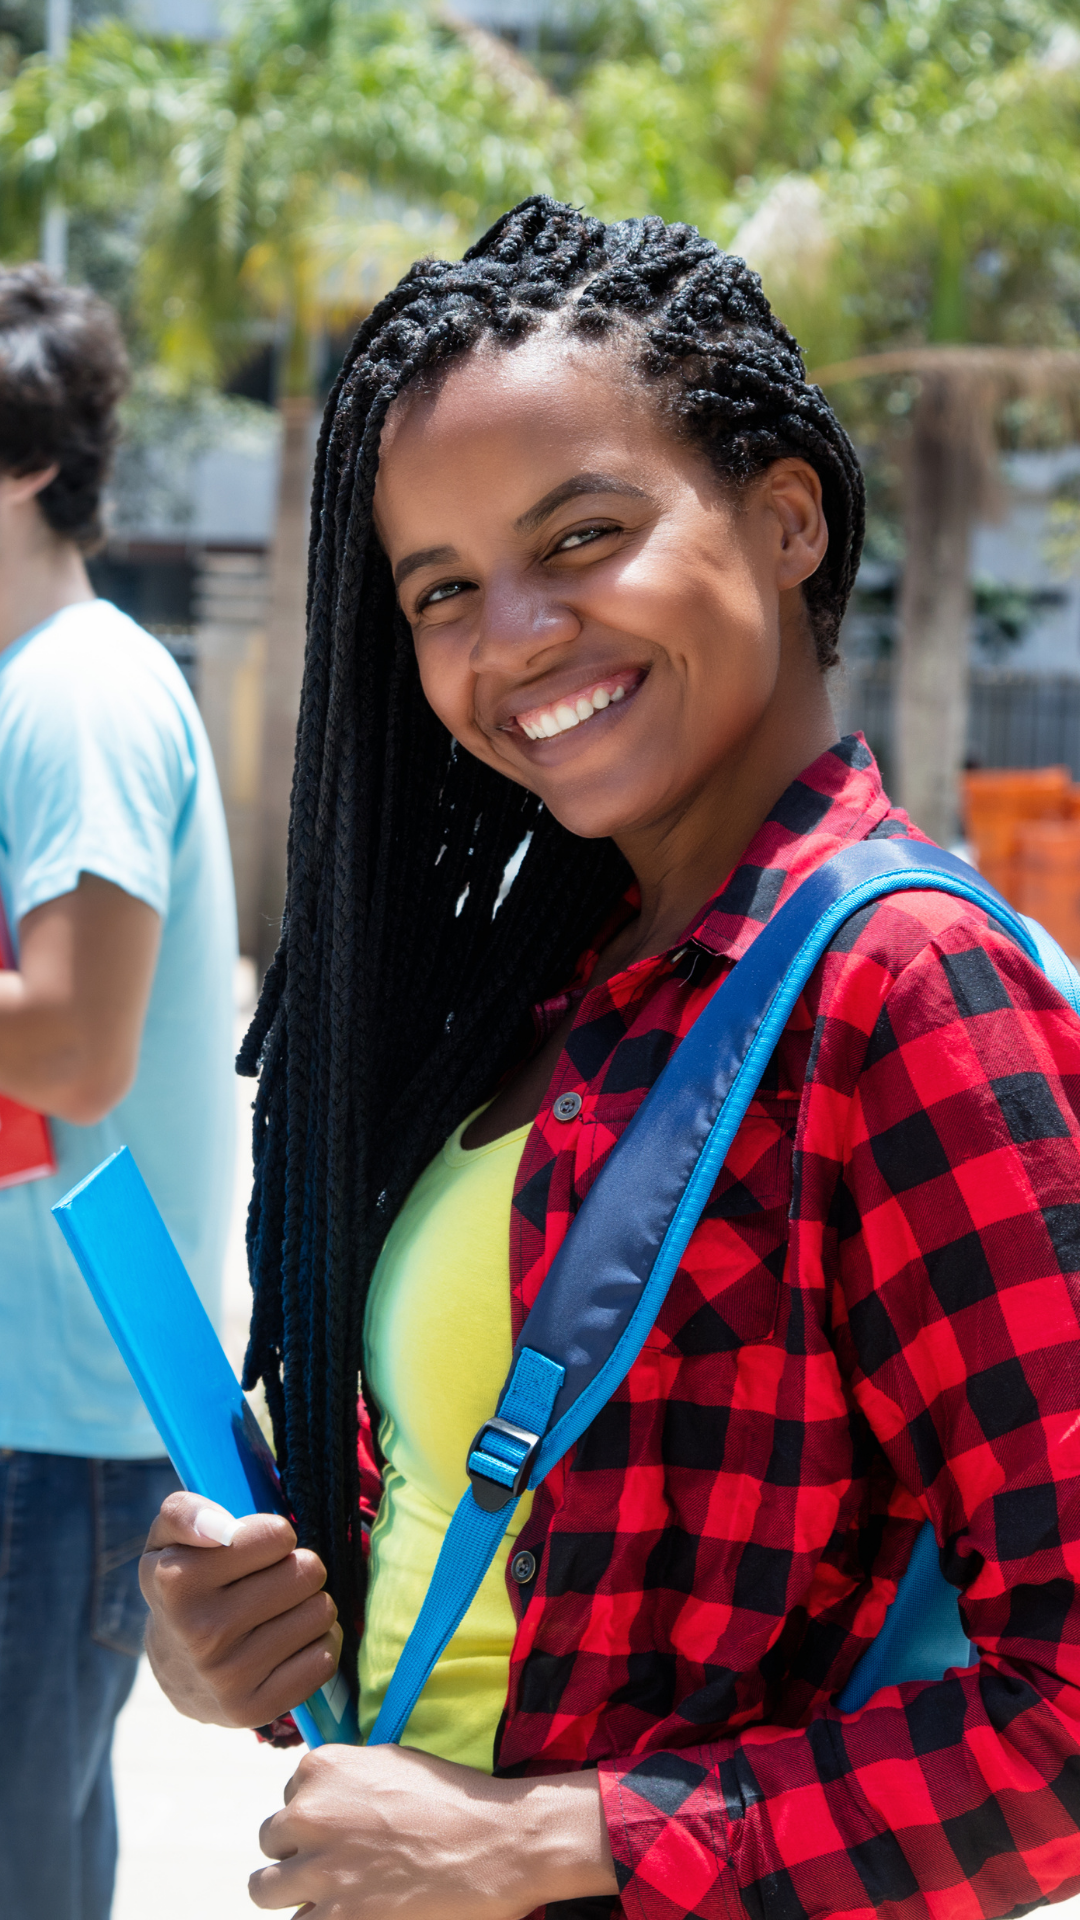 Smiling student outside with backpack